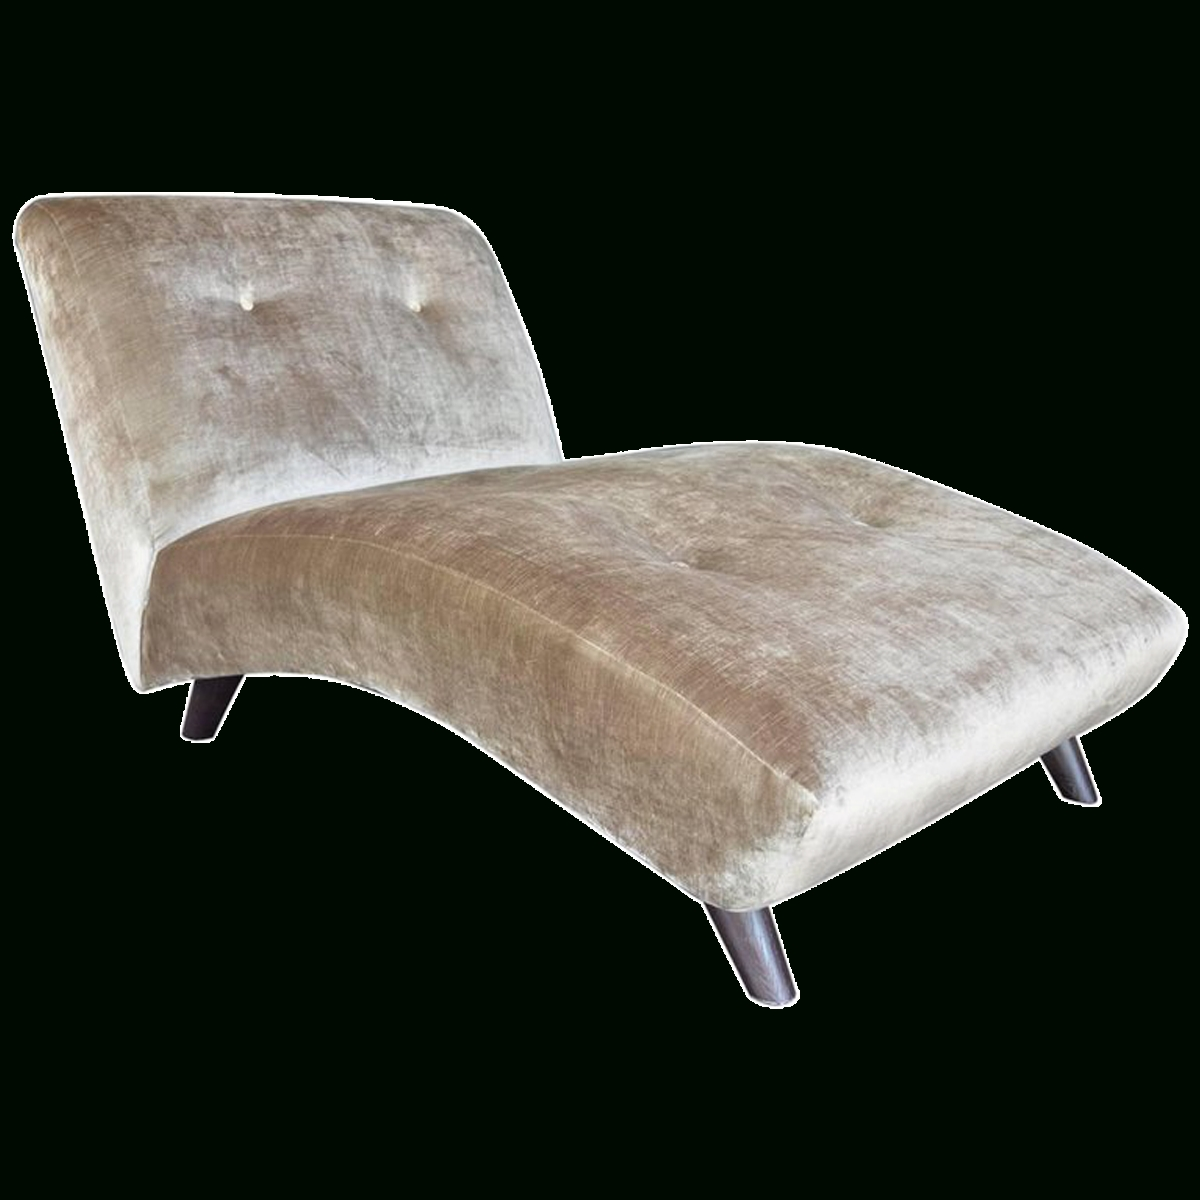 Velvet Chaise Lounges Regarding Well Liked Viyet – Designer Furniture – Seating – Vintage Velvet Chaise Lounge (Gallery 5 of 15)